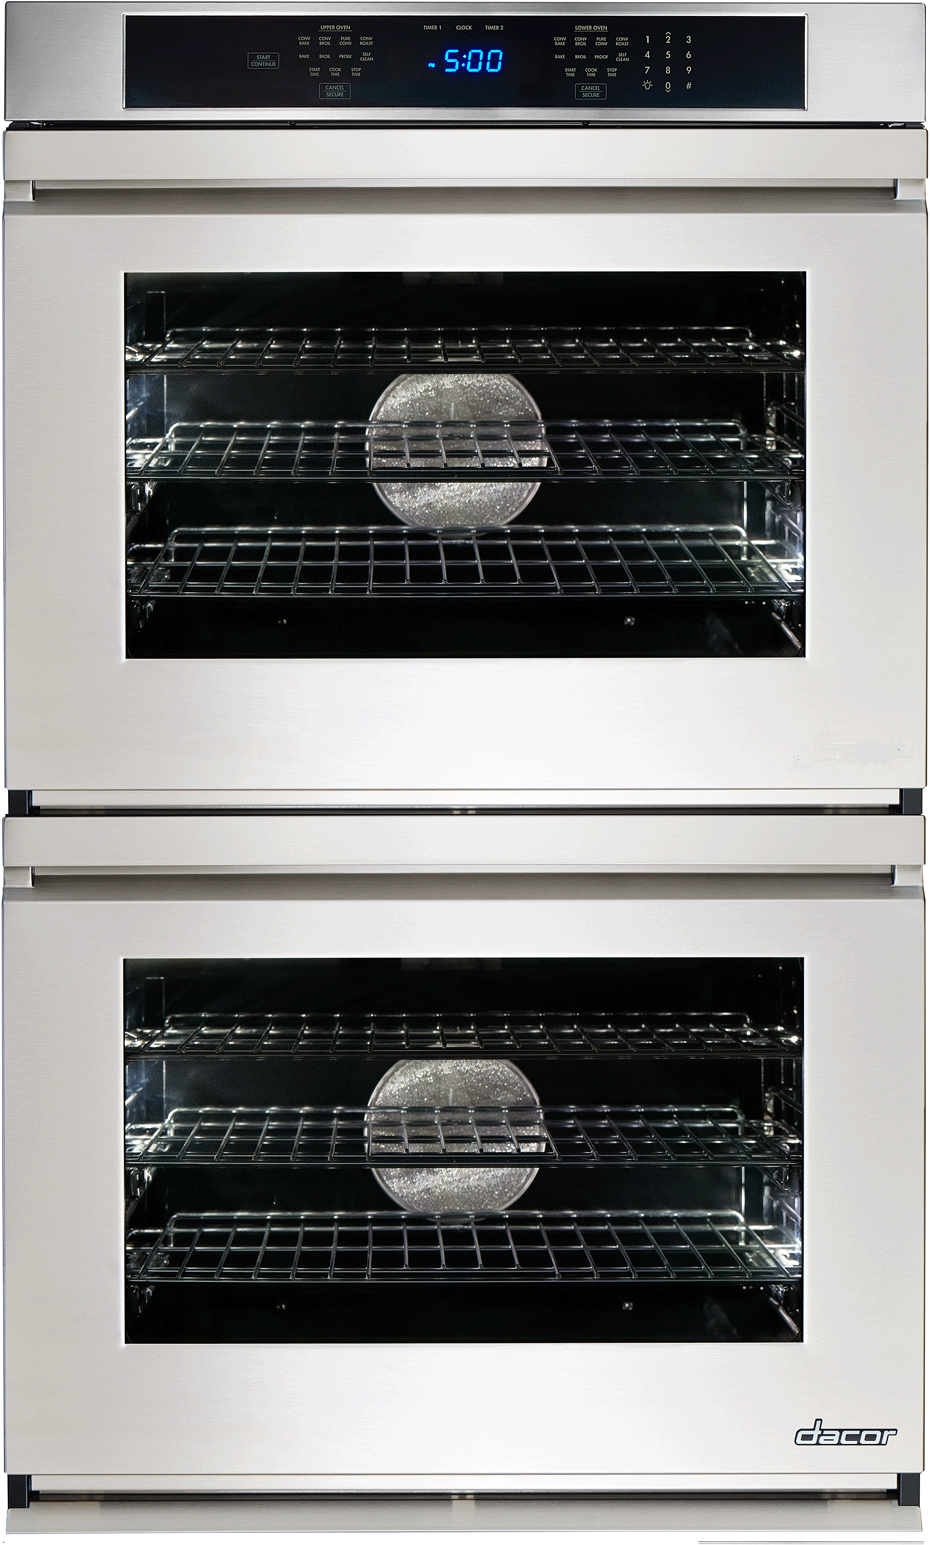 Dacor Oven Wiring Diagram - Wiring Diagram Post on